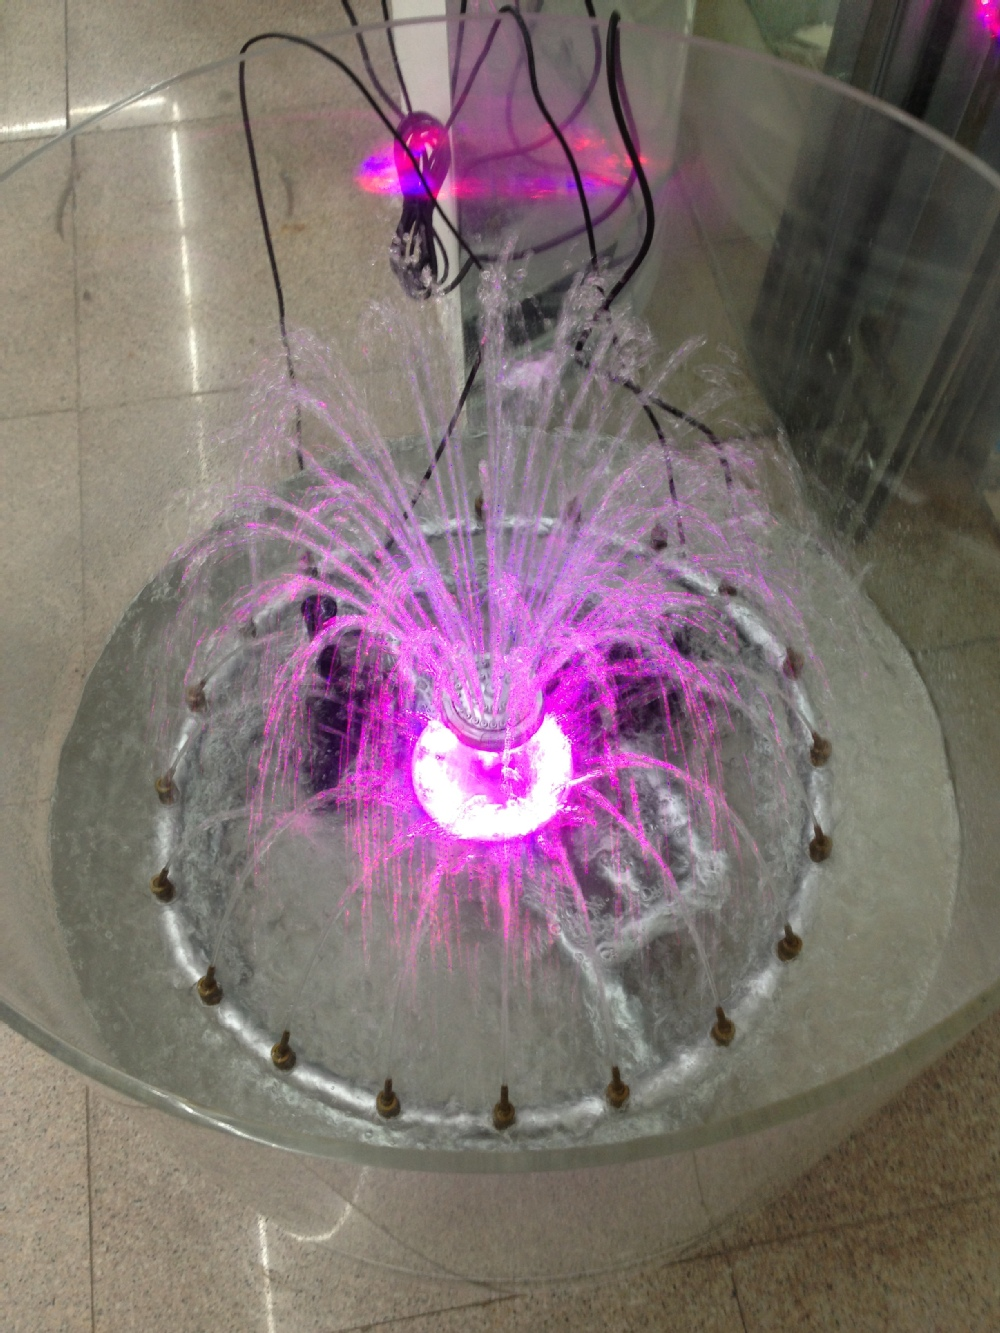 Export high quality garden design water fountain with colorful led light